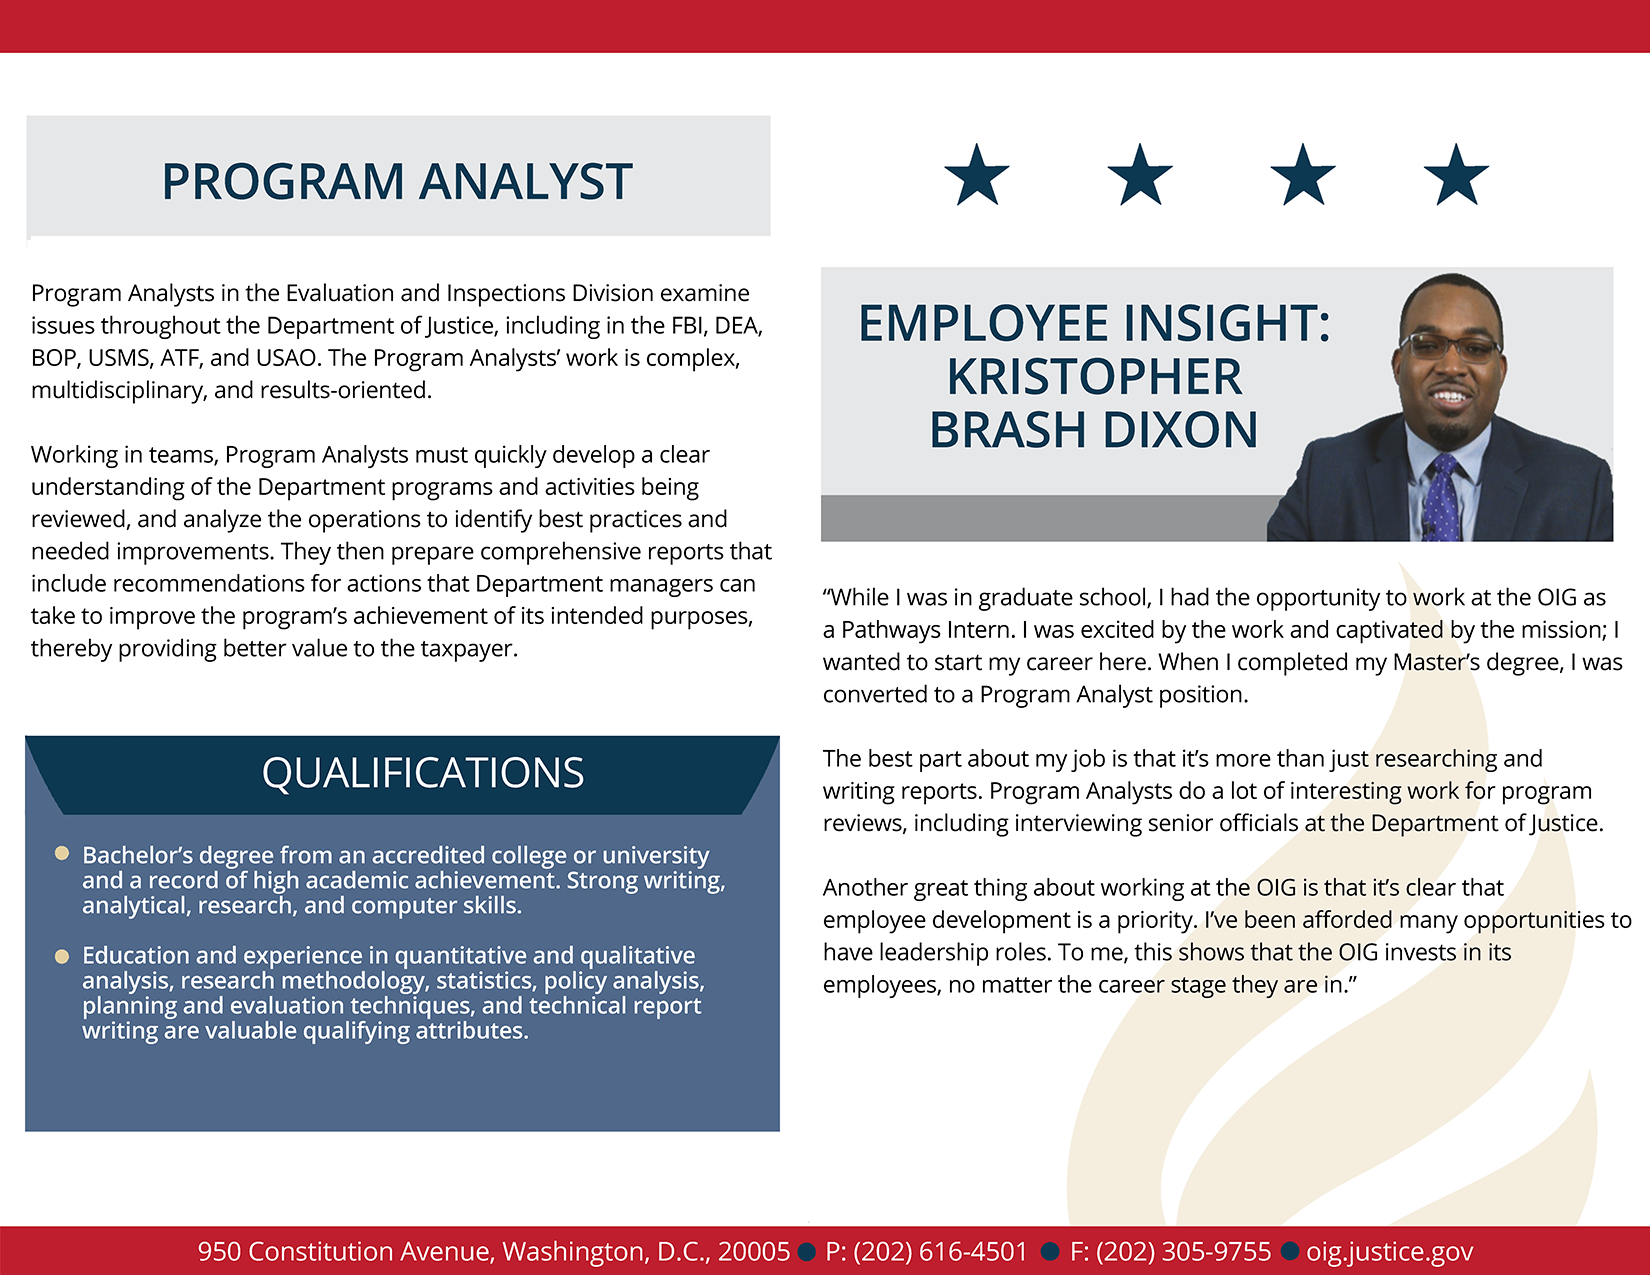 Learn more about the analyst employee experience